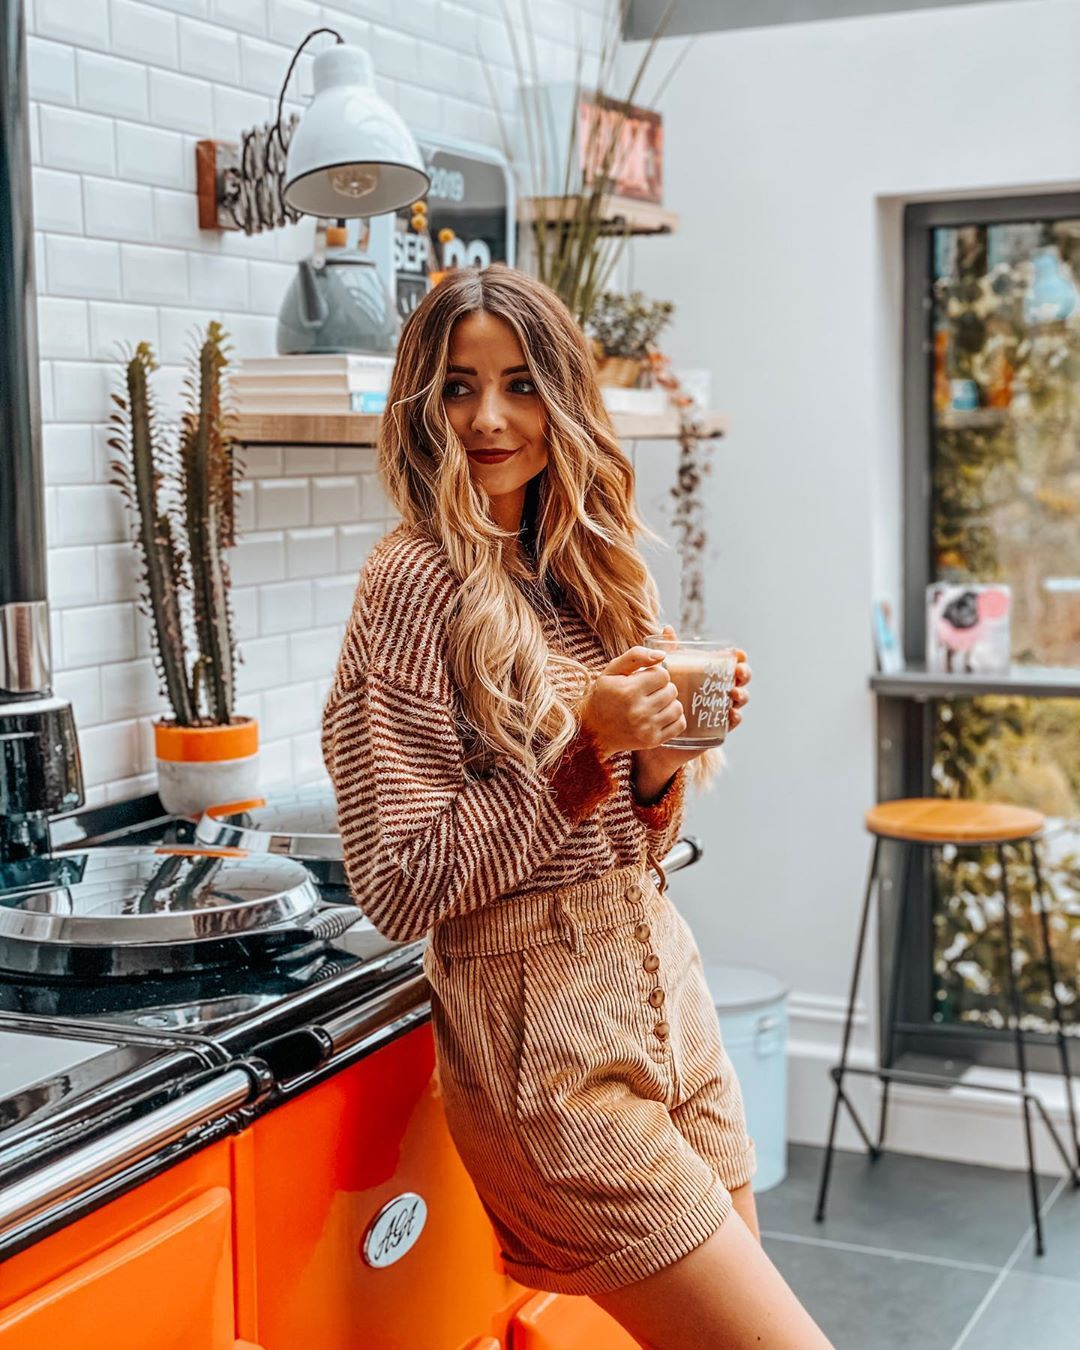 After We Did Up Our House People Would Ask Me What My Favourite Room Was To Which I Always Replied The Family Bathroom Zoella Outfits Zoella Style Zoe Sugg